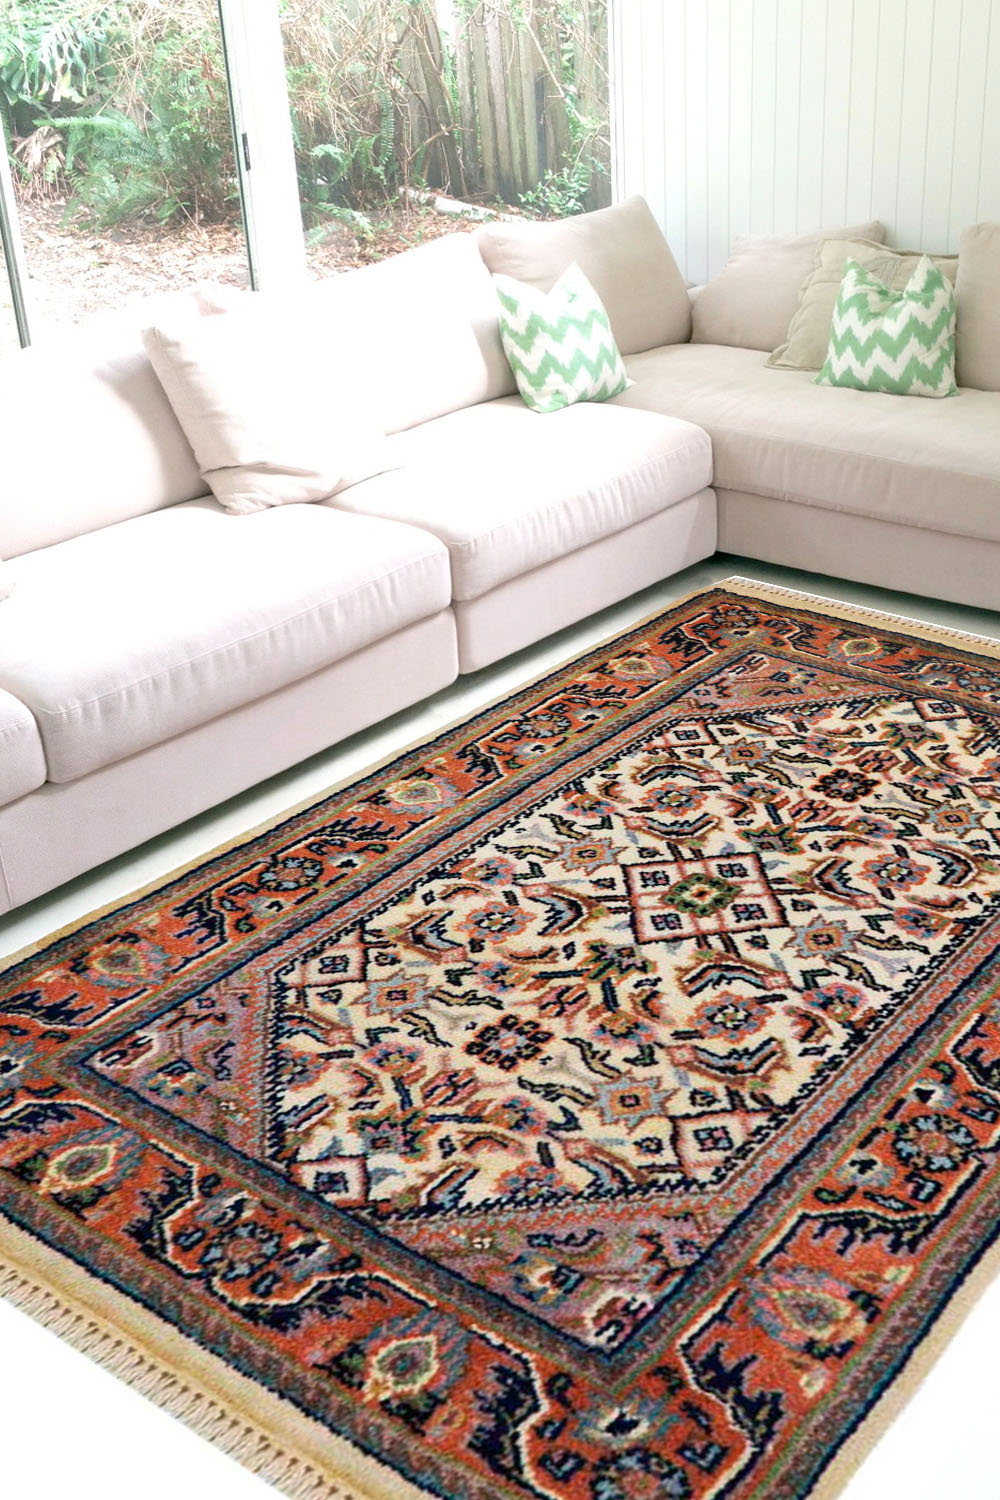 Shop Best Quality Bidjar Double Wool Rug Online At Great Price